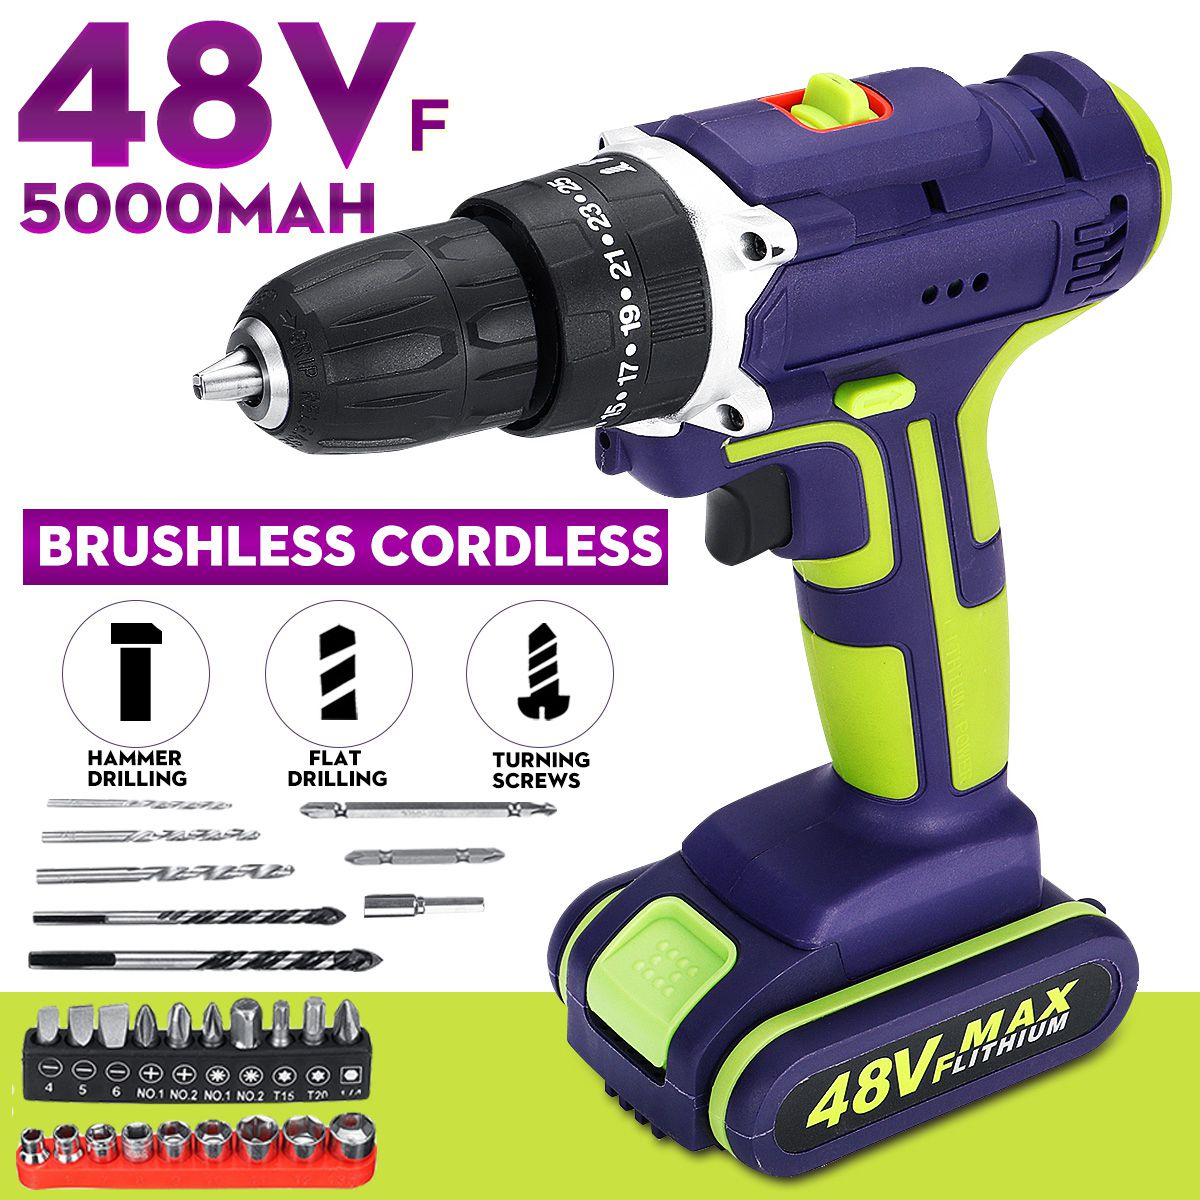 48V 3 In 1 Hammer Drill Cordless Double Speed Power Drills LED lighting Large Capacity Battery 50Nm 25+1 Torque Electric Drill